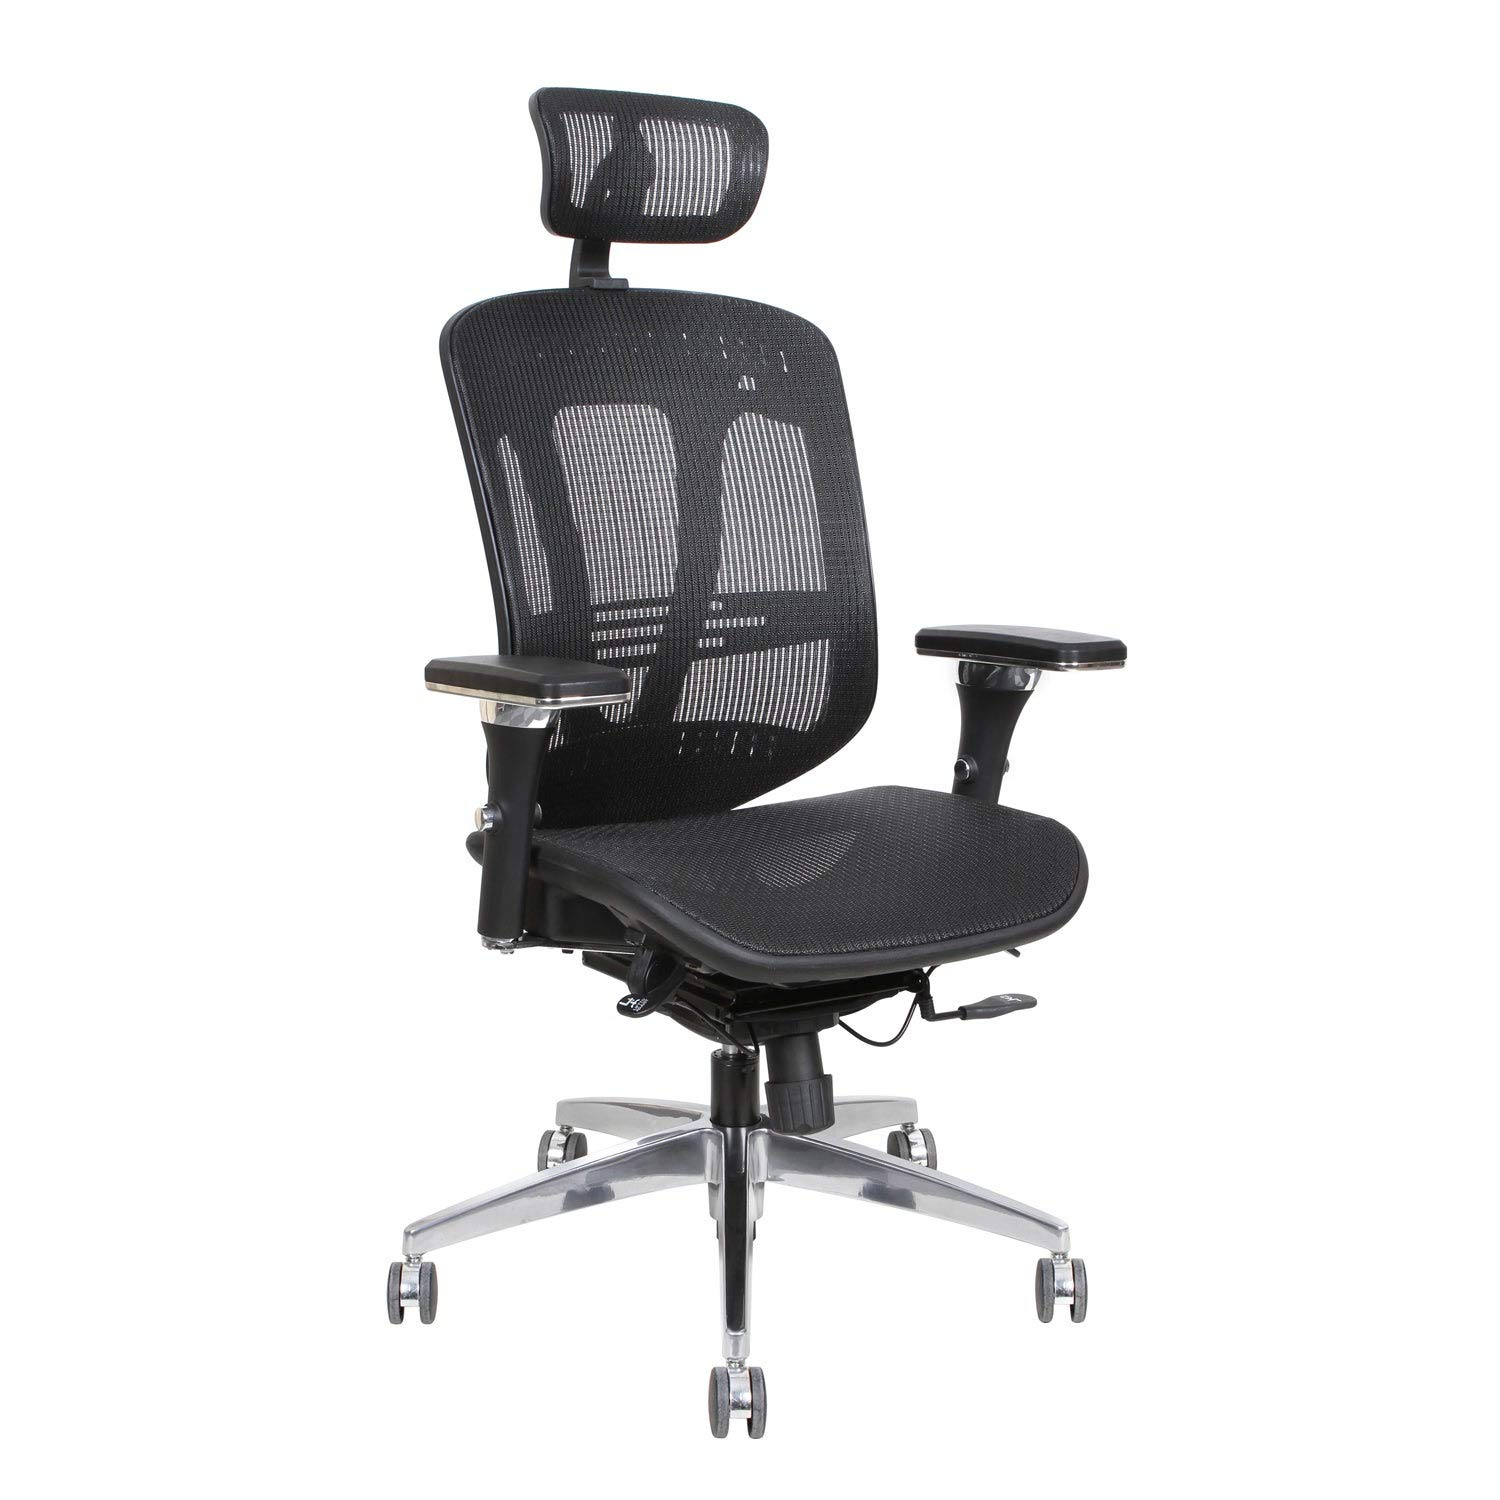 Thornton's Office Supplies ErgoExec Black Mesh Metal/Plastic Rolling Swivel Height-Adjustable Executive Computer Office Desk Chair with Adjustable Arms, Tilt Adjustable and Headrest